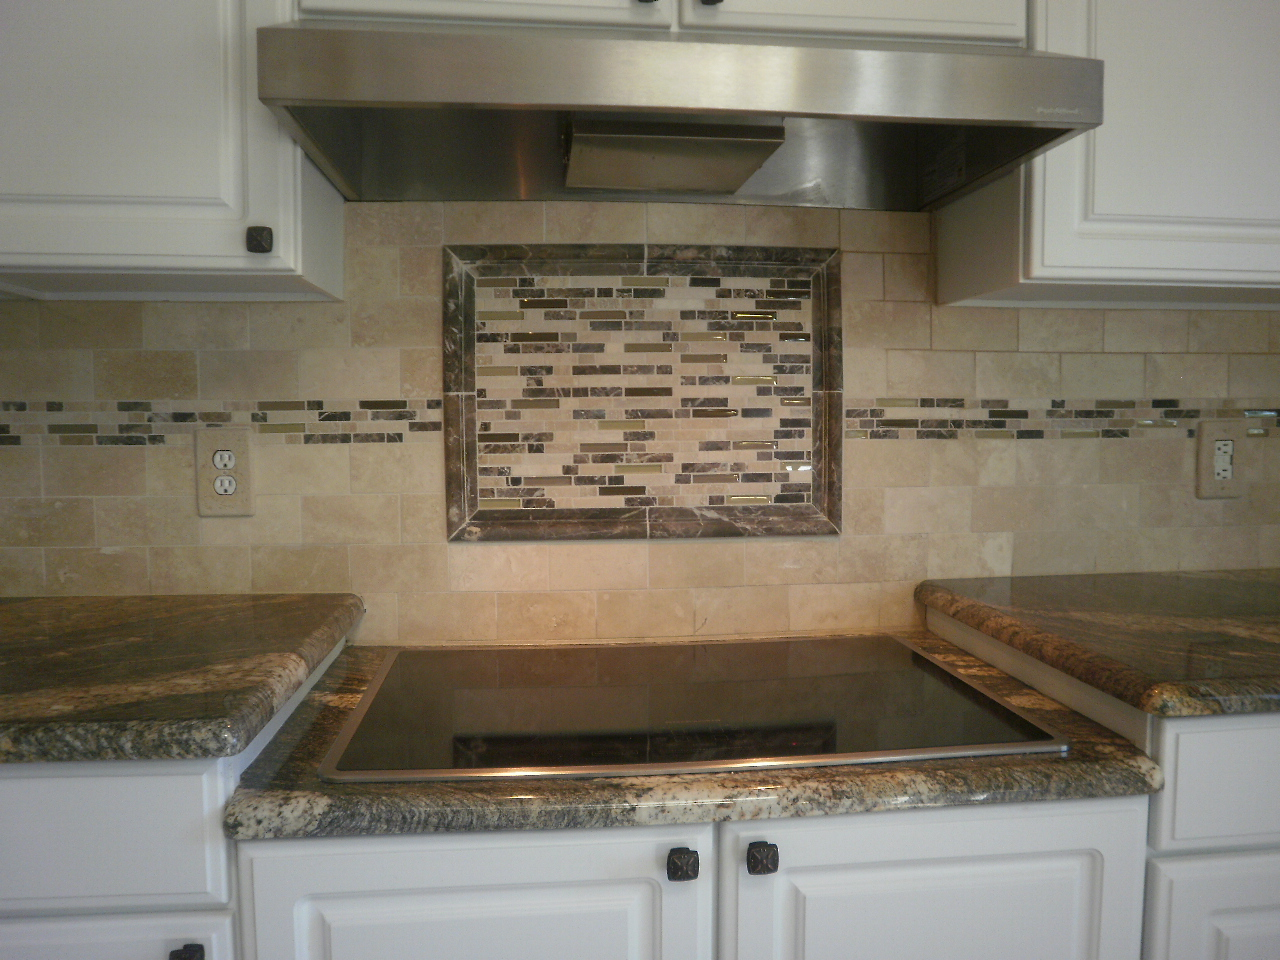 Kitchen backsplash ideas glass tile afreakatheart Design kitchen backsplash glass tiles